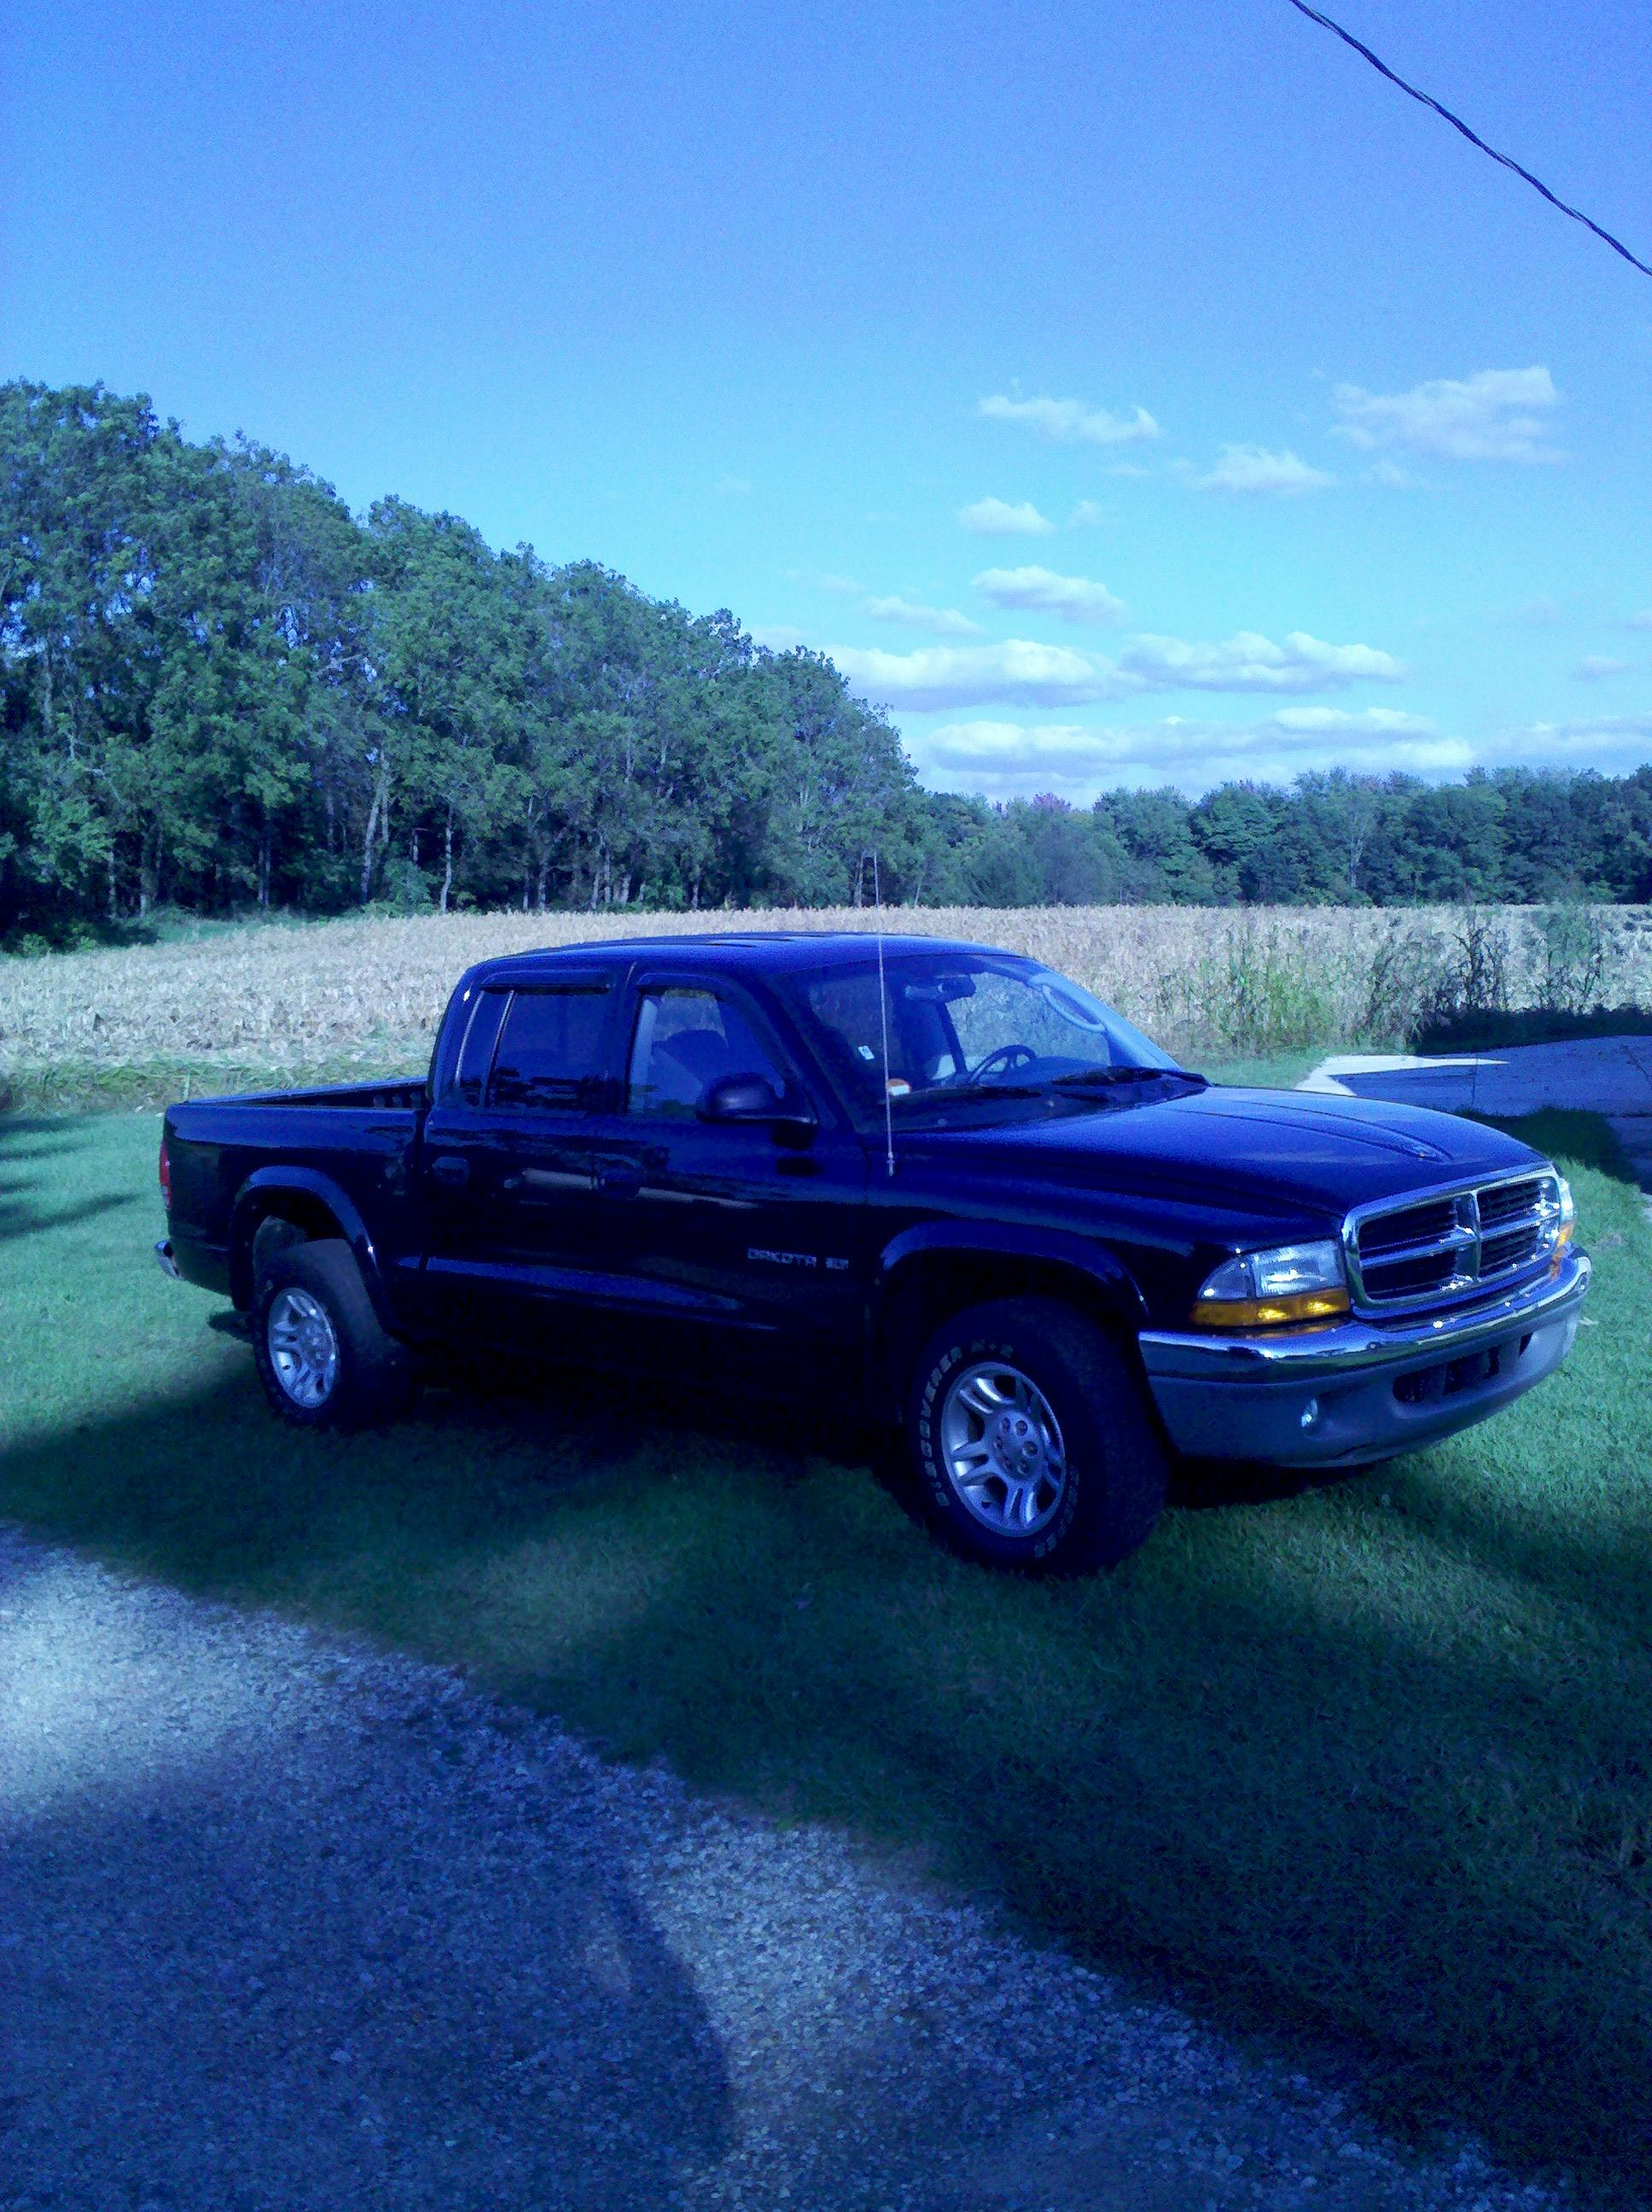 Andrewjfrancisco's 2002 Dodge Dakota Quad Cab